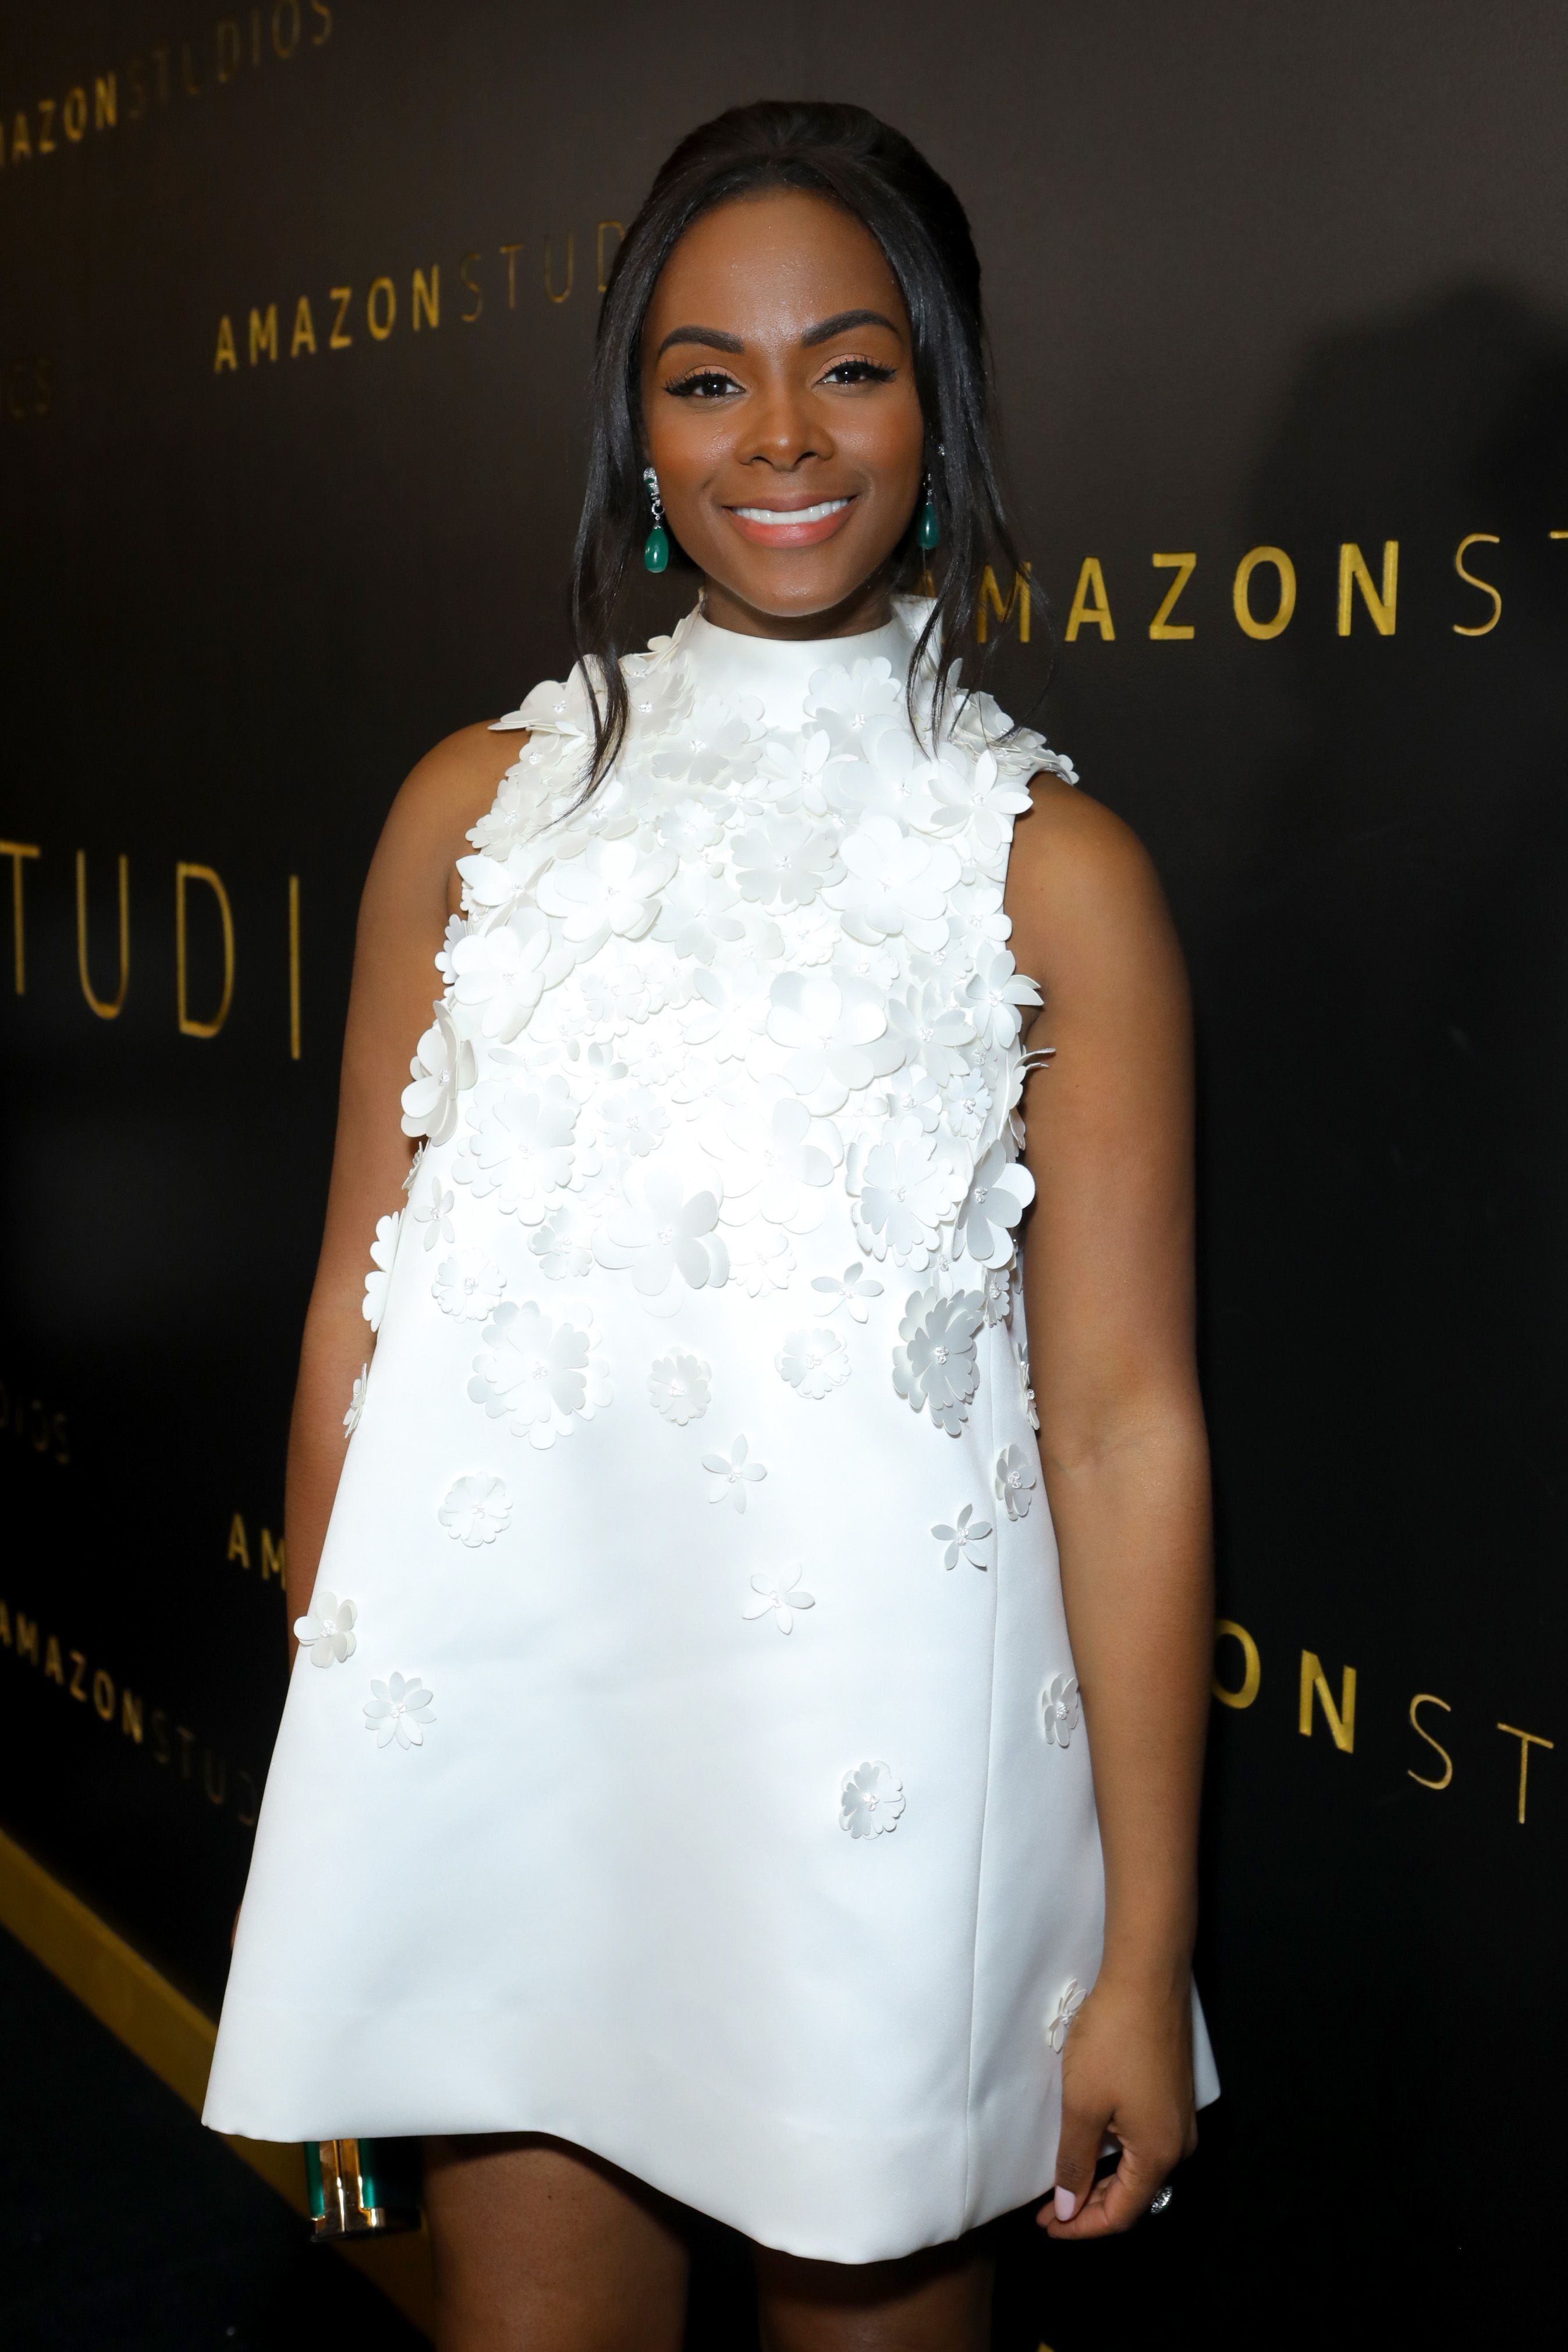 Actress Tika Sumpter attending the Golden Globes After Party on Jan. 5, 2020 in California   Photo: Getty Images